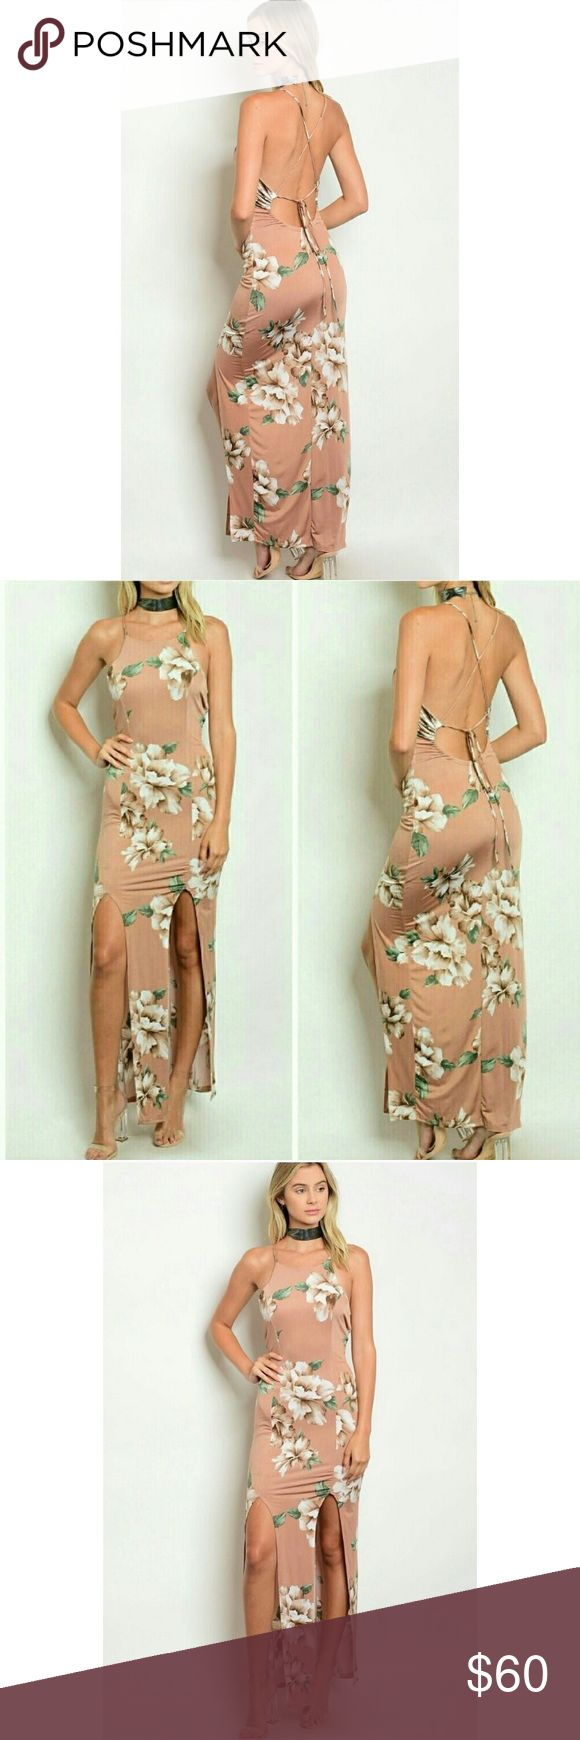 Double Slit Maxi Dress Absolutely beautiful Maxi dress with a double slit in the front and ties in the back, gives a great open back look!! Great to wear out on hot days ❤️ Threadzwear Dresses Maxi